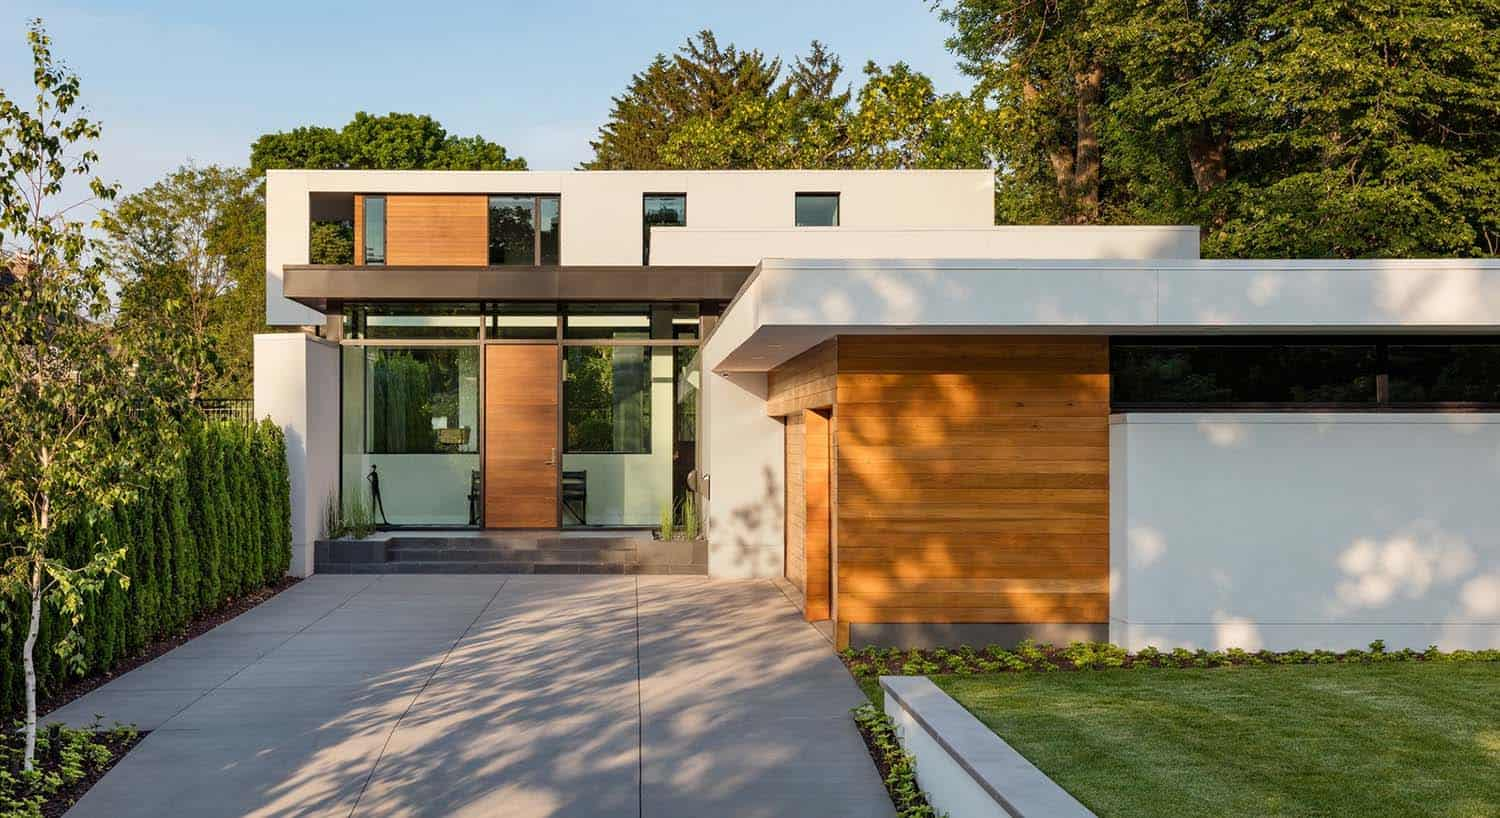 Dynamic Modern Home-Peterssen Keller Architecture-02-1 Kindesign